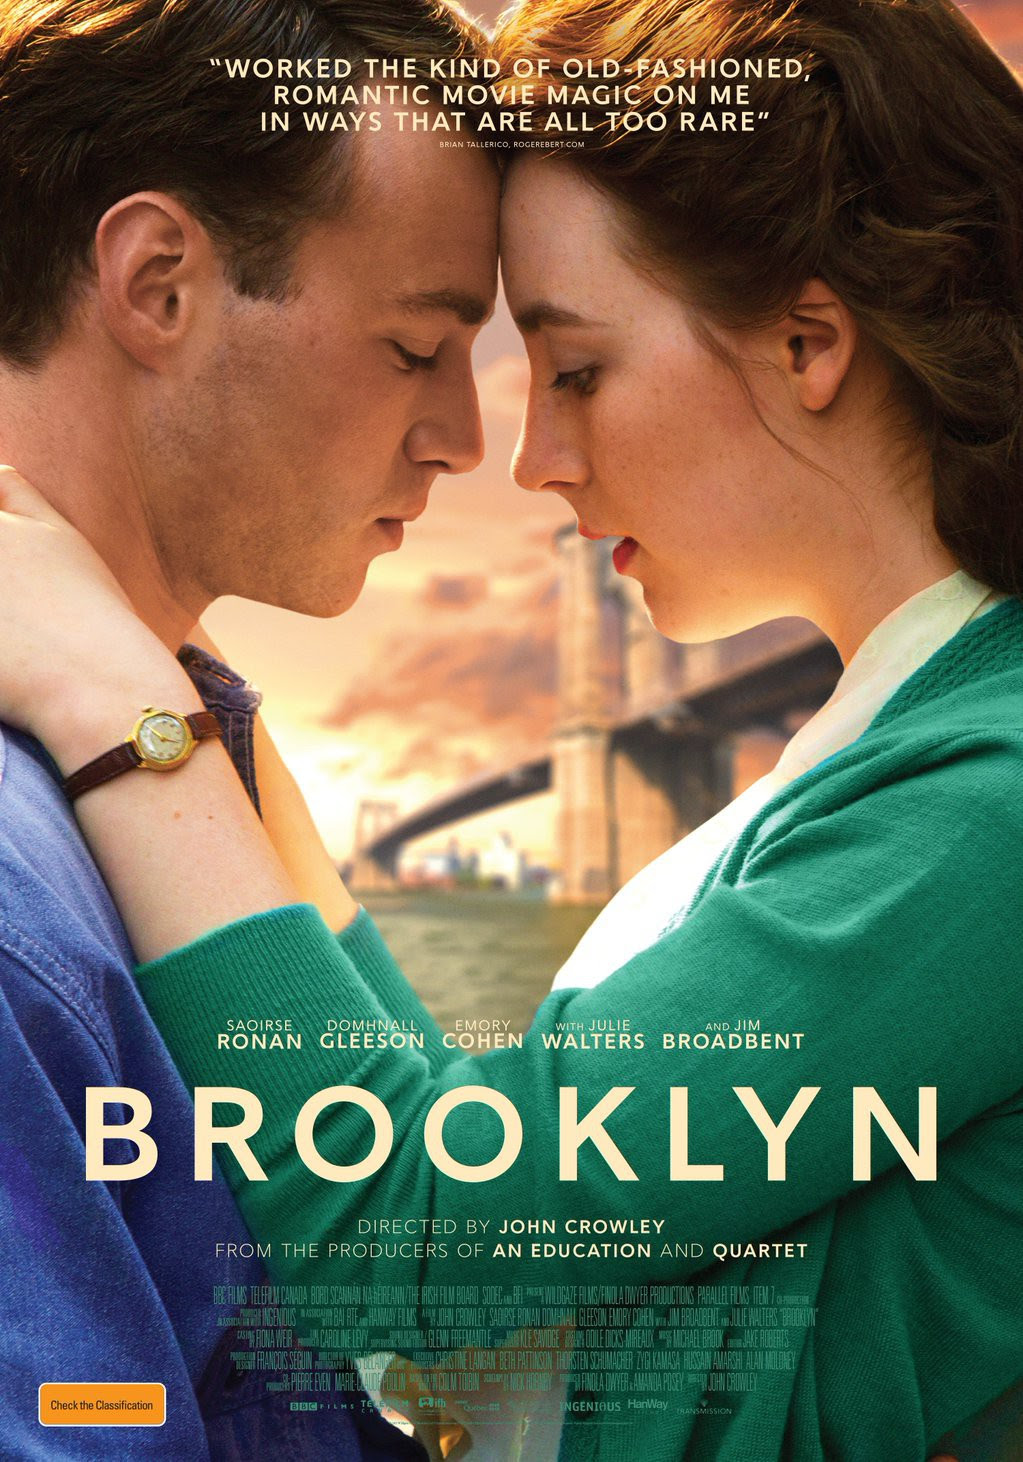 http://vignette2.wikia.nocookie.net/scratchpad/images/1/15/2015_-_Brooklyn_Movie_Poster.jpg/revision/latest?cb=20151124182610